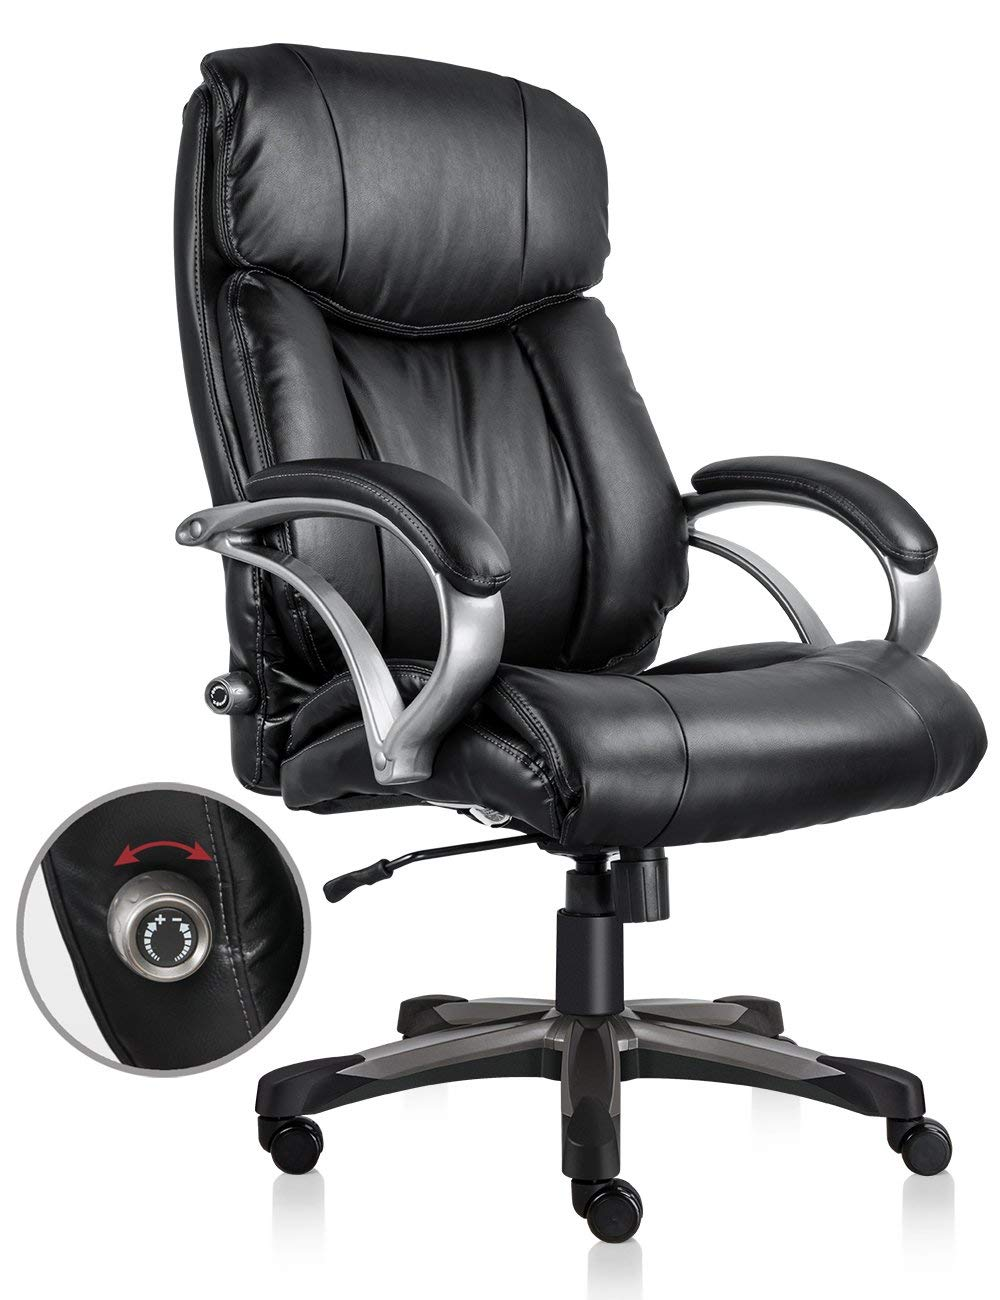 VOF Furniture Heavy Duty Executive Office Chair Ergonomic High Back Swivel Office Chair with Comfortable Lumbar Support Bonded Leather Home Office Chair(Black)